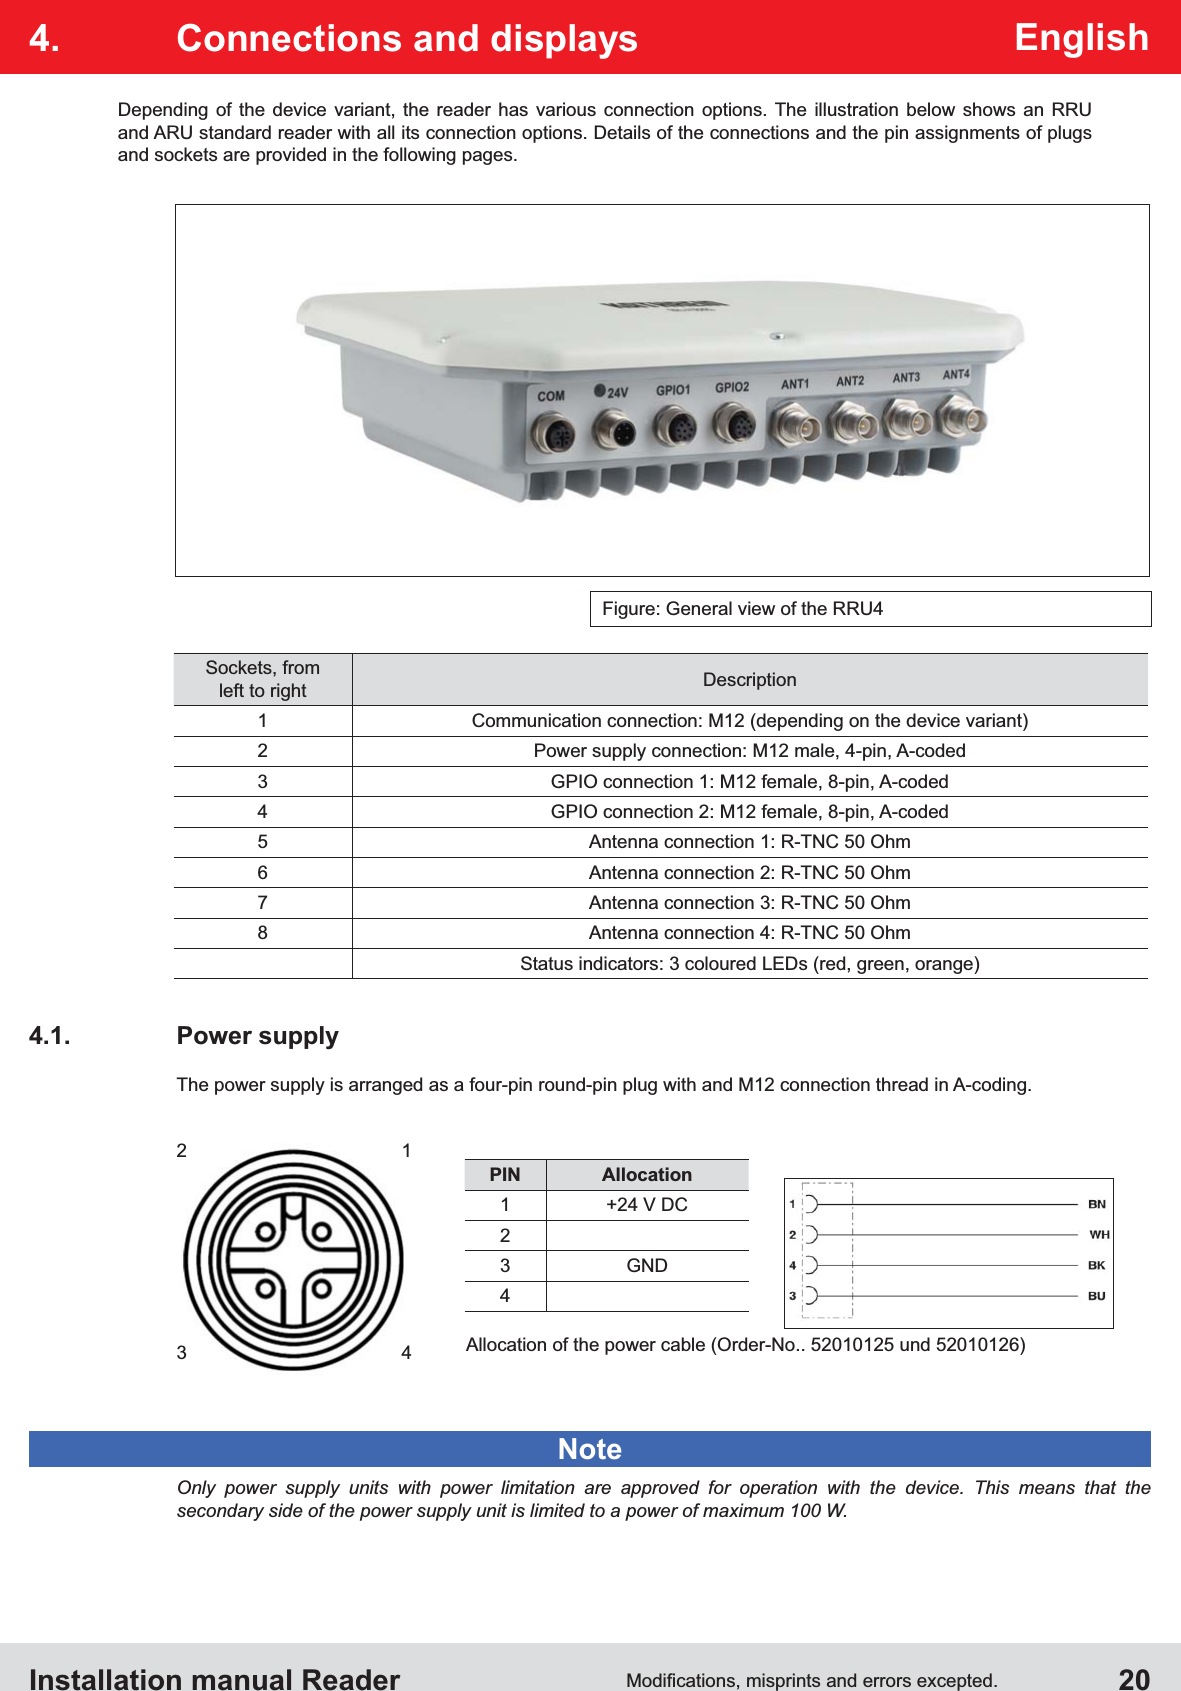 Installation manual Reader  20English4.  Connections and displaysFigure: General view of the RRU42   13   4PIN Allocation1 +24 V DC23 GND4Allocation of the power cable (Order-No.. 52010125 und 52010126)Depending of the device variant, the reader has various connection options. The illustration below shows an RRU and ARU standard reader with all its connection options. Details of the connections and the pin assignments of plugs  and sockets are provided in the following pages.Sockets, from left to right Description1 Communication connection: M12 (depending on the device variant)2 Power supply connection: M12 male, 4-pin, A-coded3 GPIO connection 1: M12 female, 8-pin, A-coded4 GPIO connection 2: M12 female, 8-pin, A-coded5 Antenna connection 1: R-TNC 50 Ohm6 Antenna connection 2: R-TNC 50 Ohm7 Antenna connection 3: R-TNC 50 Ohm8 Antenna connection 4: R-TNC 50 OhmStatus indicators: 3 coloured LEDs (red, green, orange)4.1. Power supplyThe power supply is arranged as a four-pin round-pin plug with and M12 connection thread in A-coding.Only power supply units with power limitation are approved for operation with the device. This means that the  secondary side of the power supply unit is limited to a power of maximum 100 W.Note